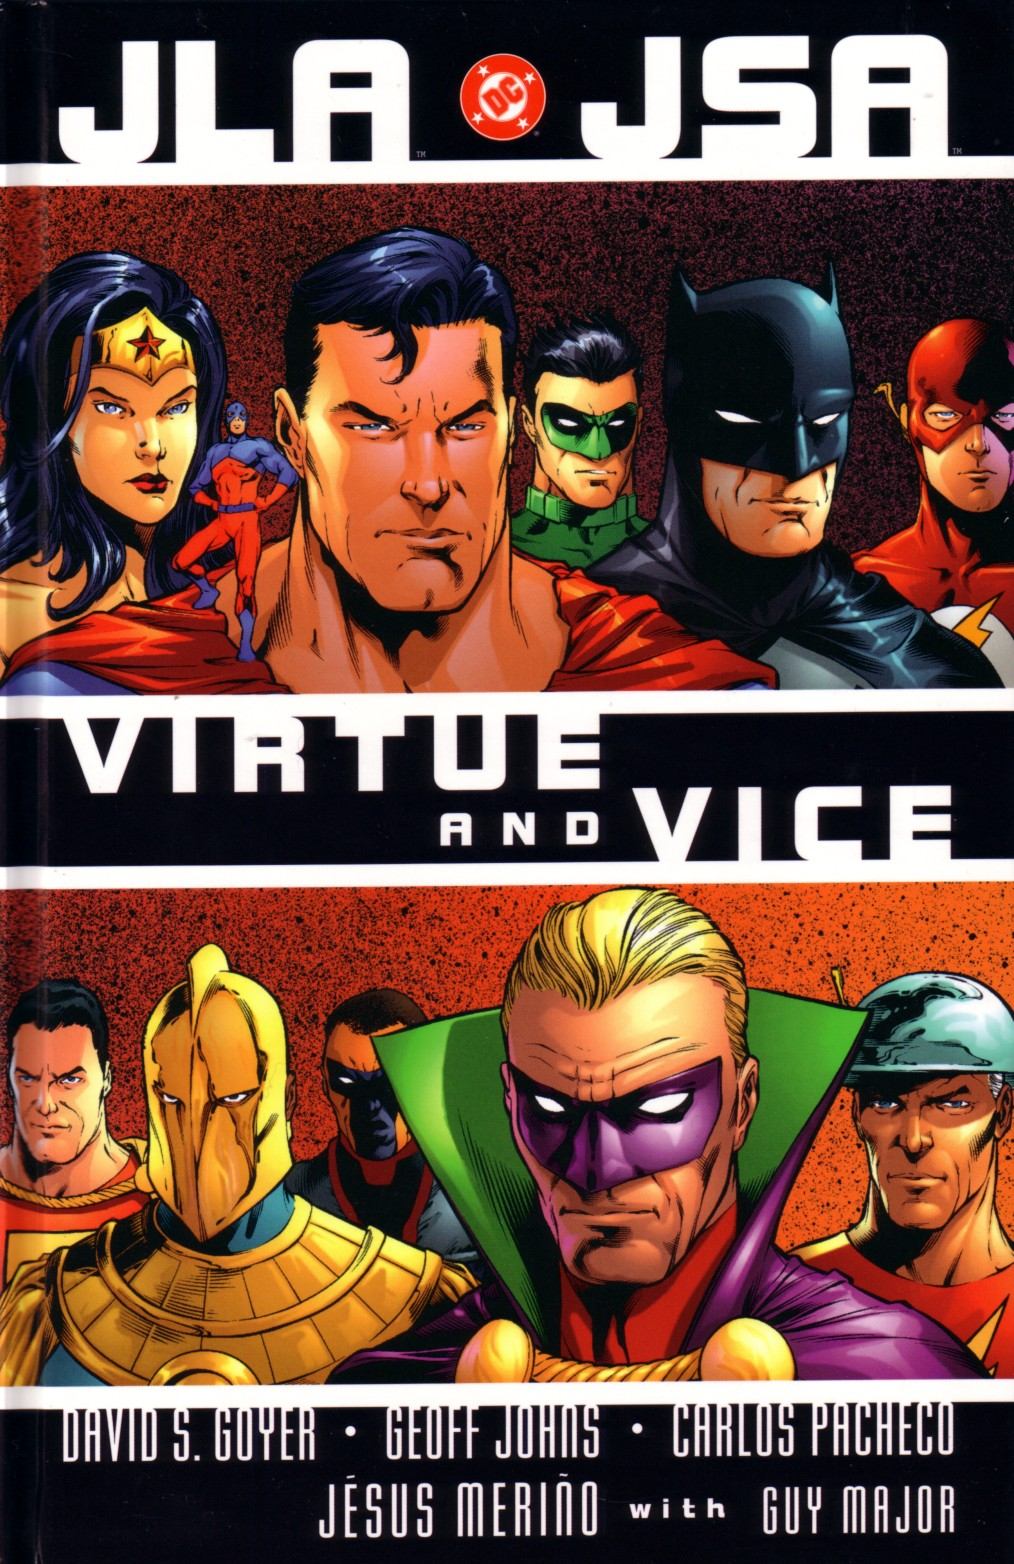 Read online JLA/JSA: Virtue and Vice comic -  Issue # TPB - 2